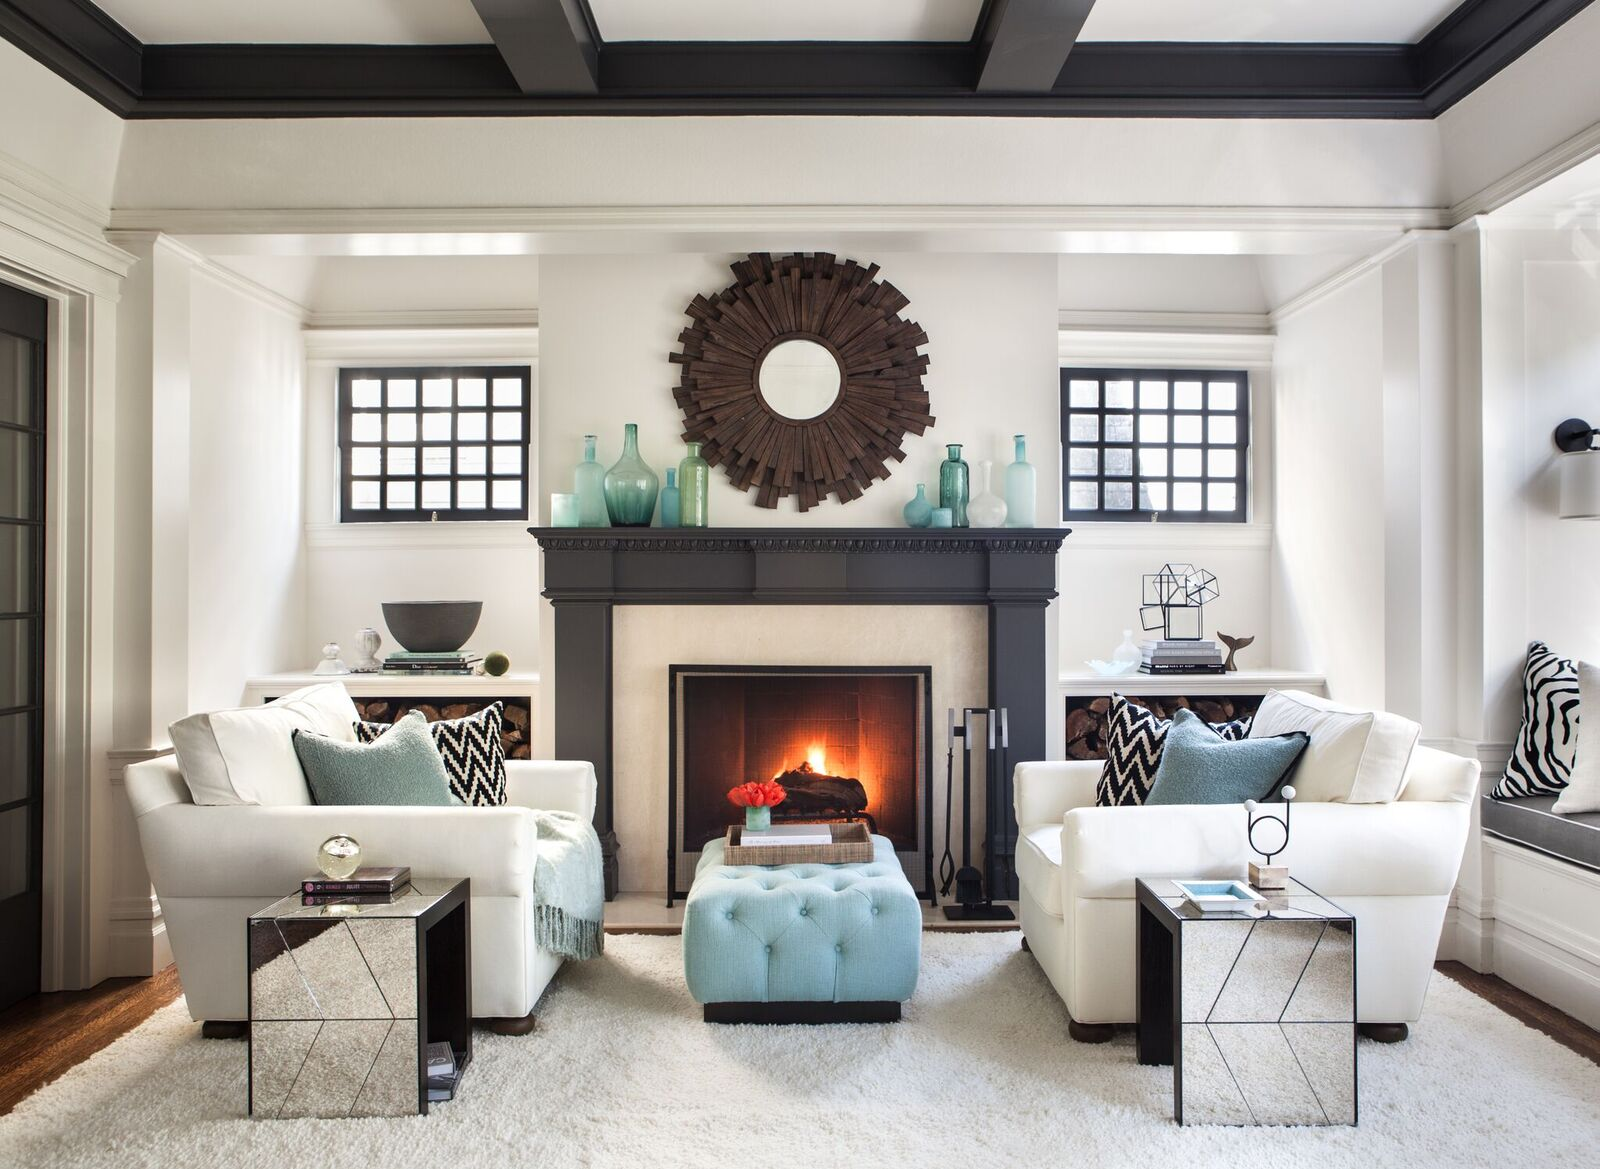 Symmetrical living room